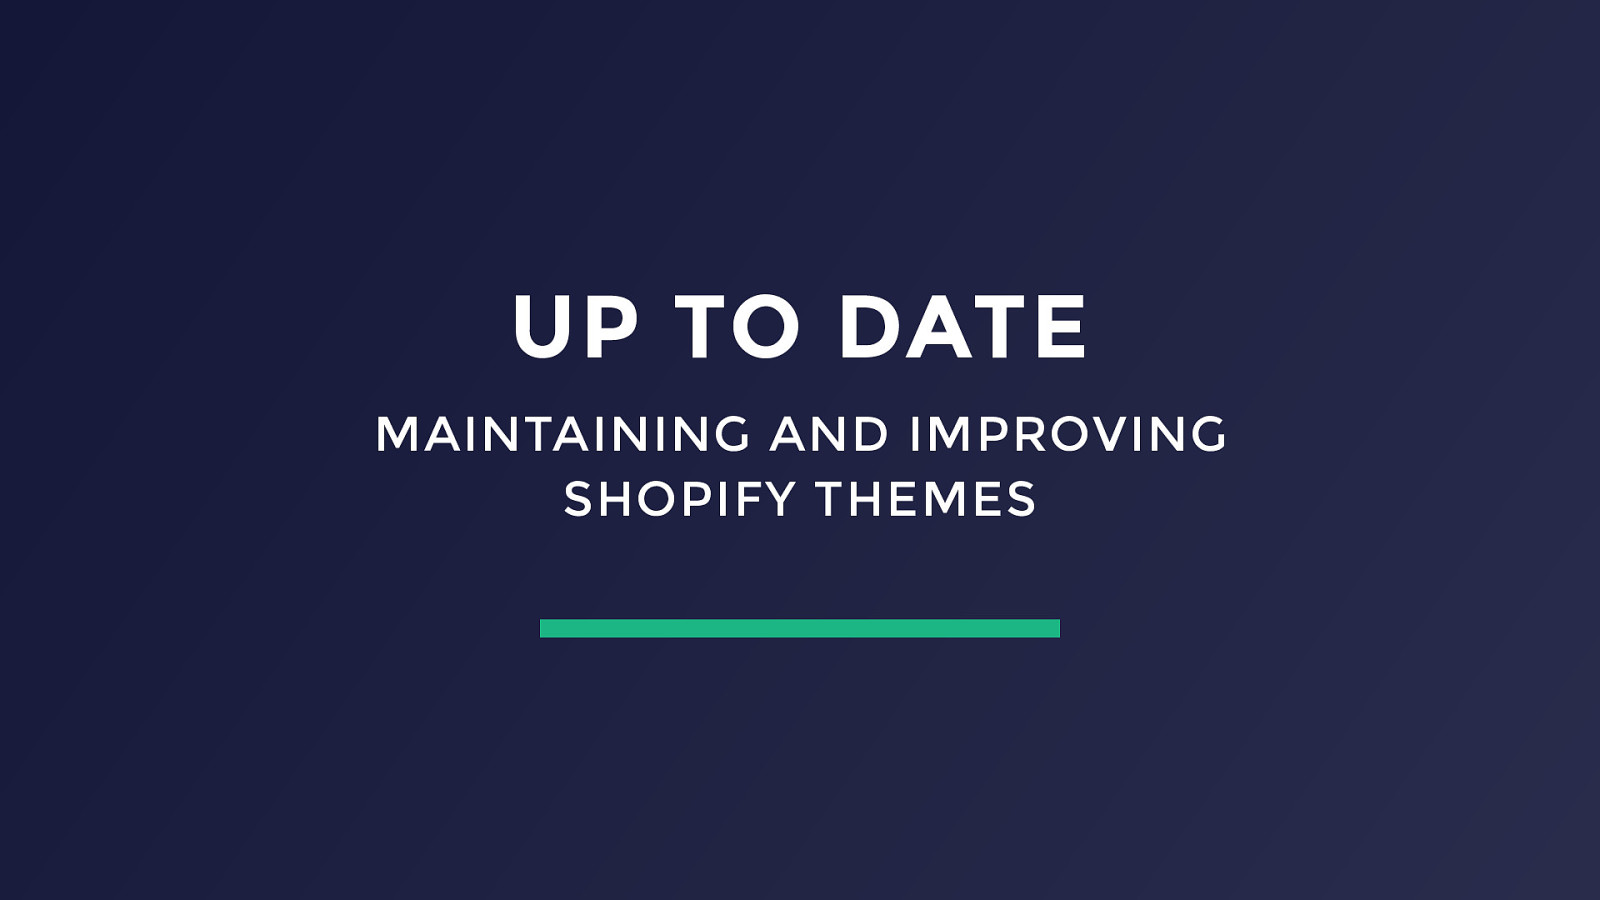 Up to Date: Maintaining and Improving Shopify Themes